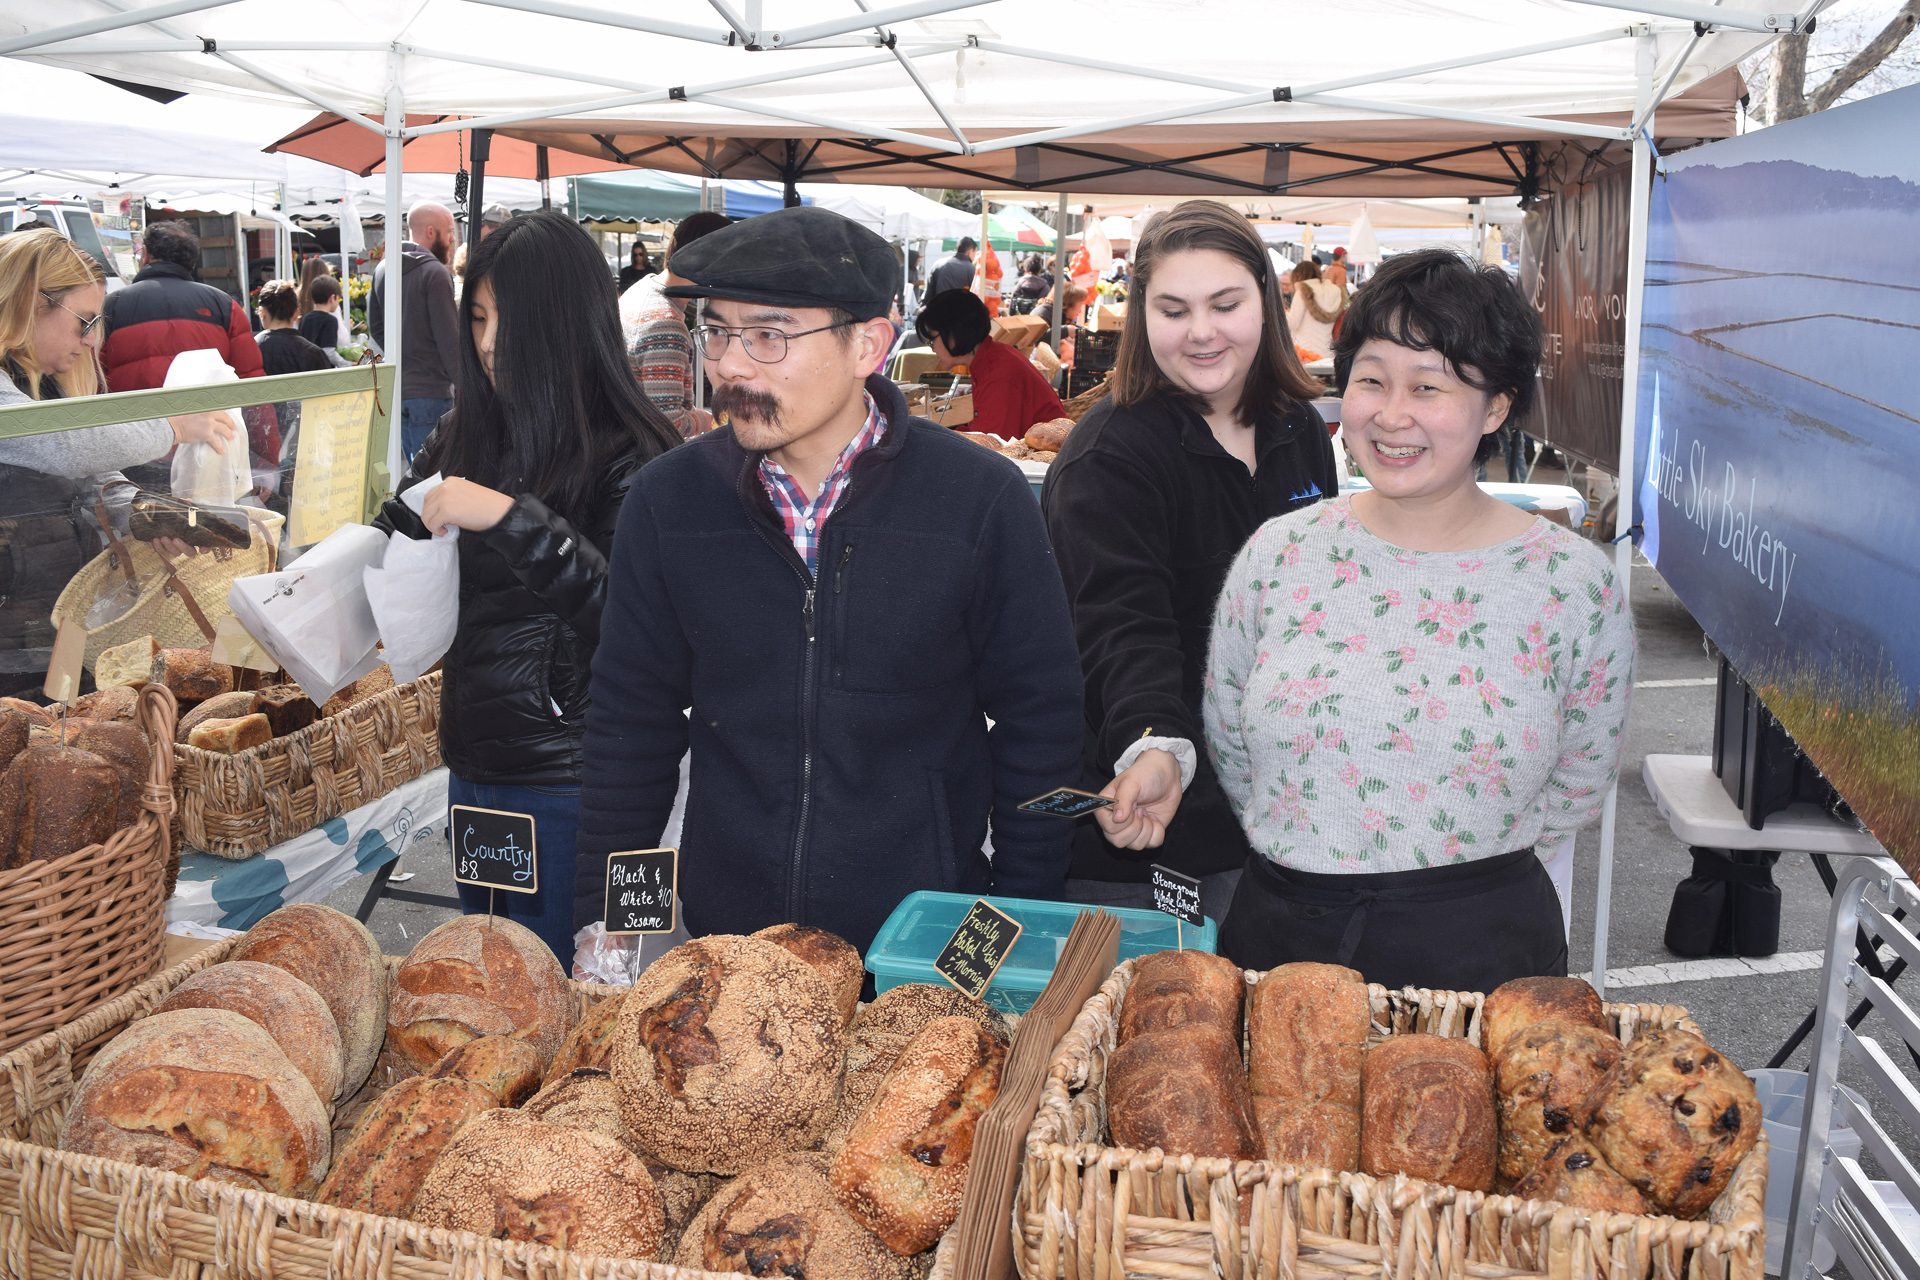 Crowds are lined up in front of the Little Sky booth at the Menlo Park farmers market before it opens and snag everything available.  Left, Yan Xu; right, Tian Mayimin.